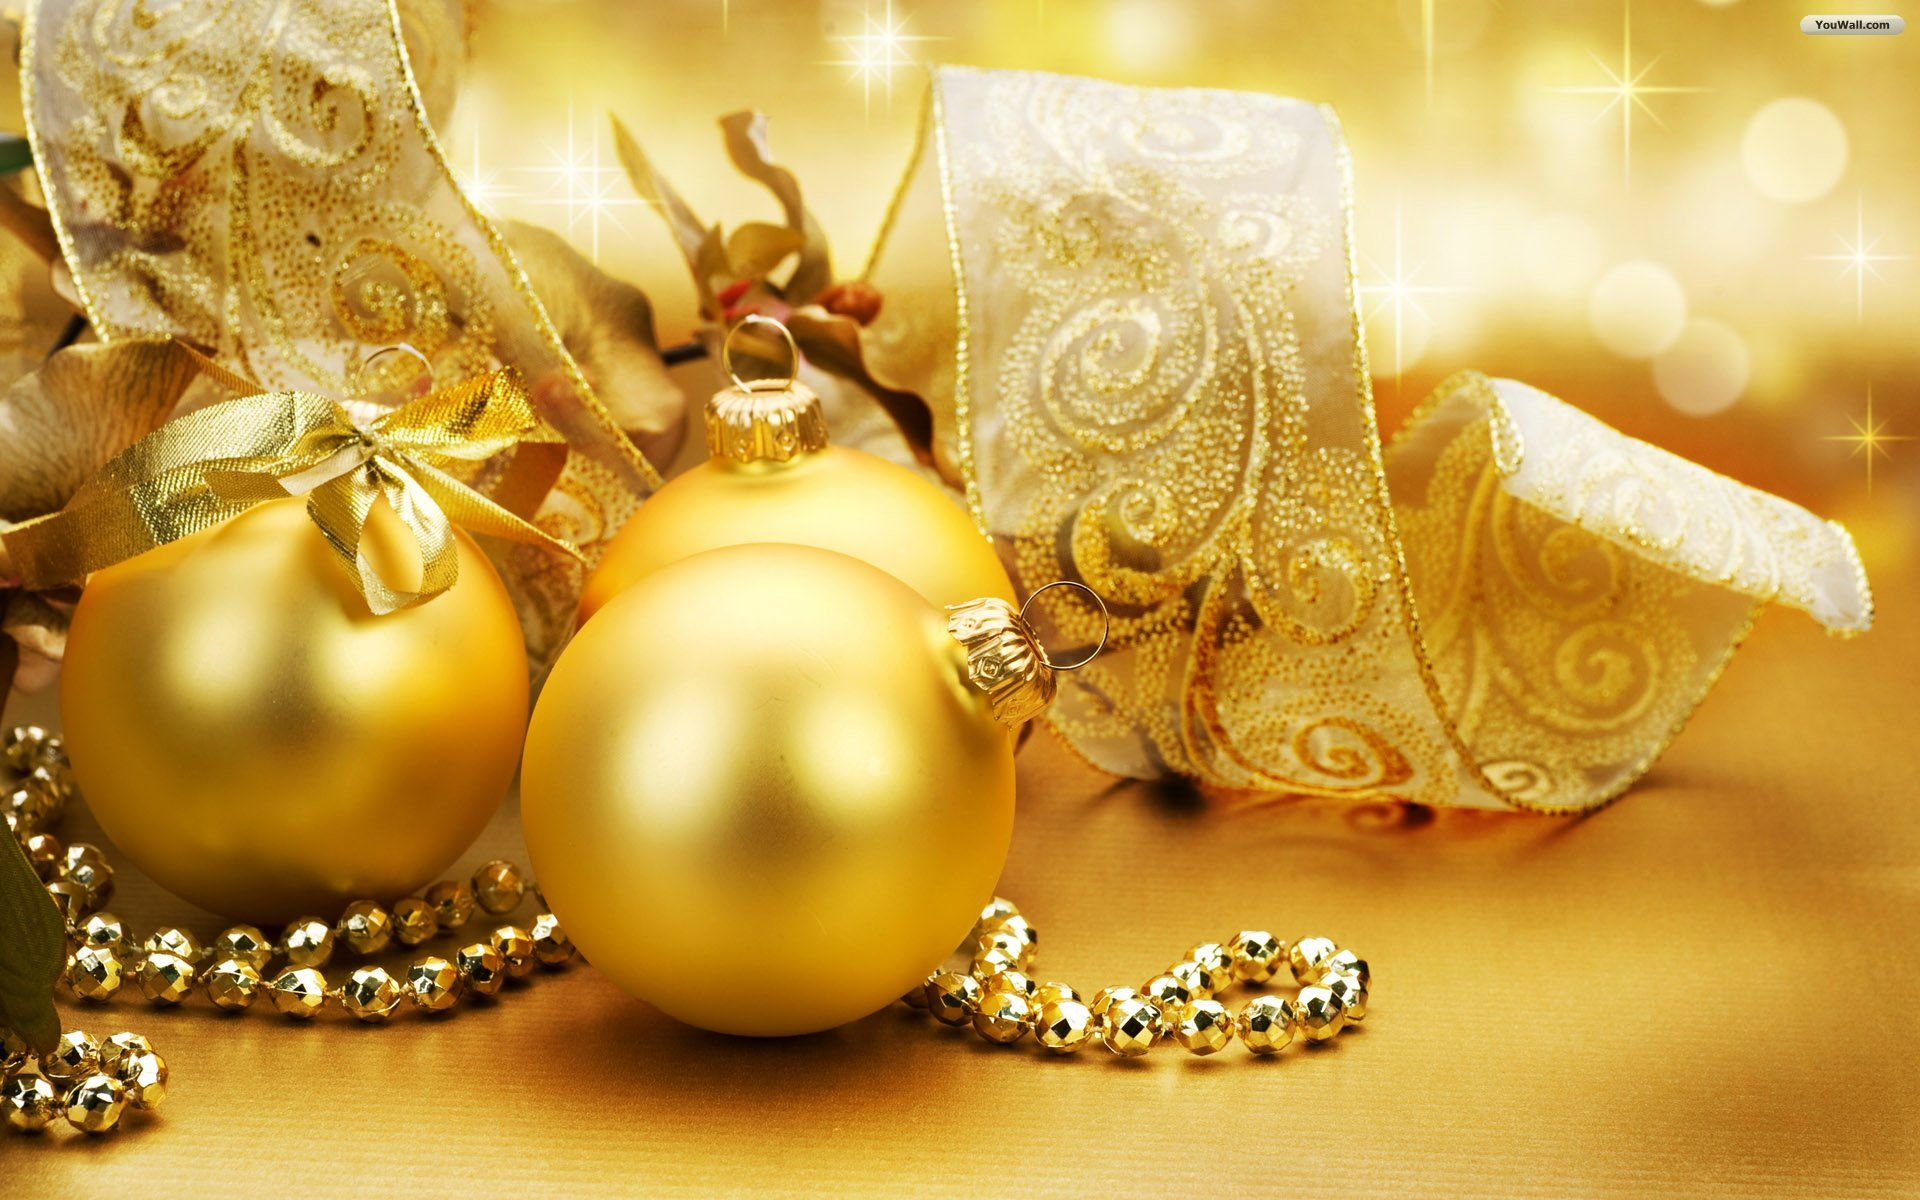 Christmas Ornaments Are Decorations That Are Used To Festoon A